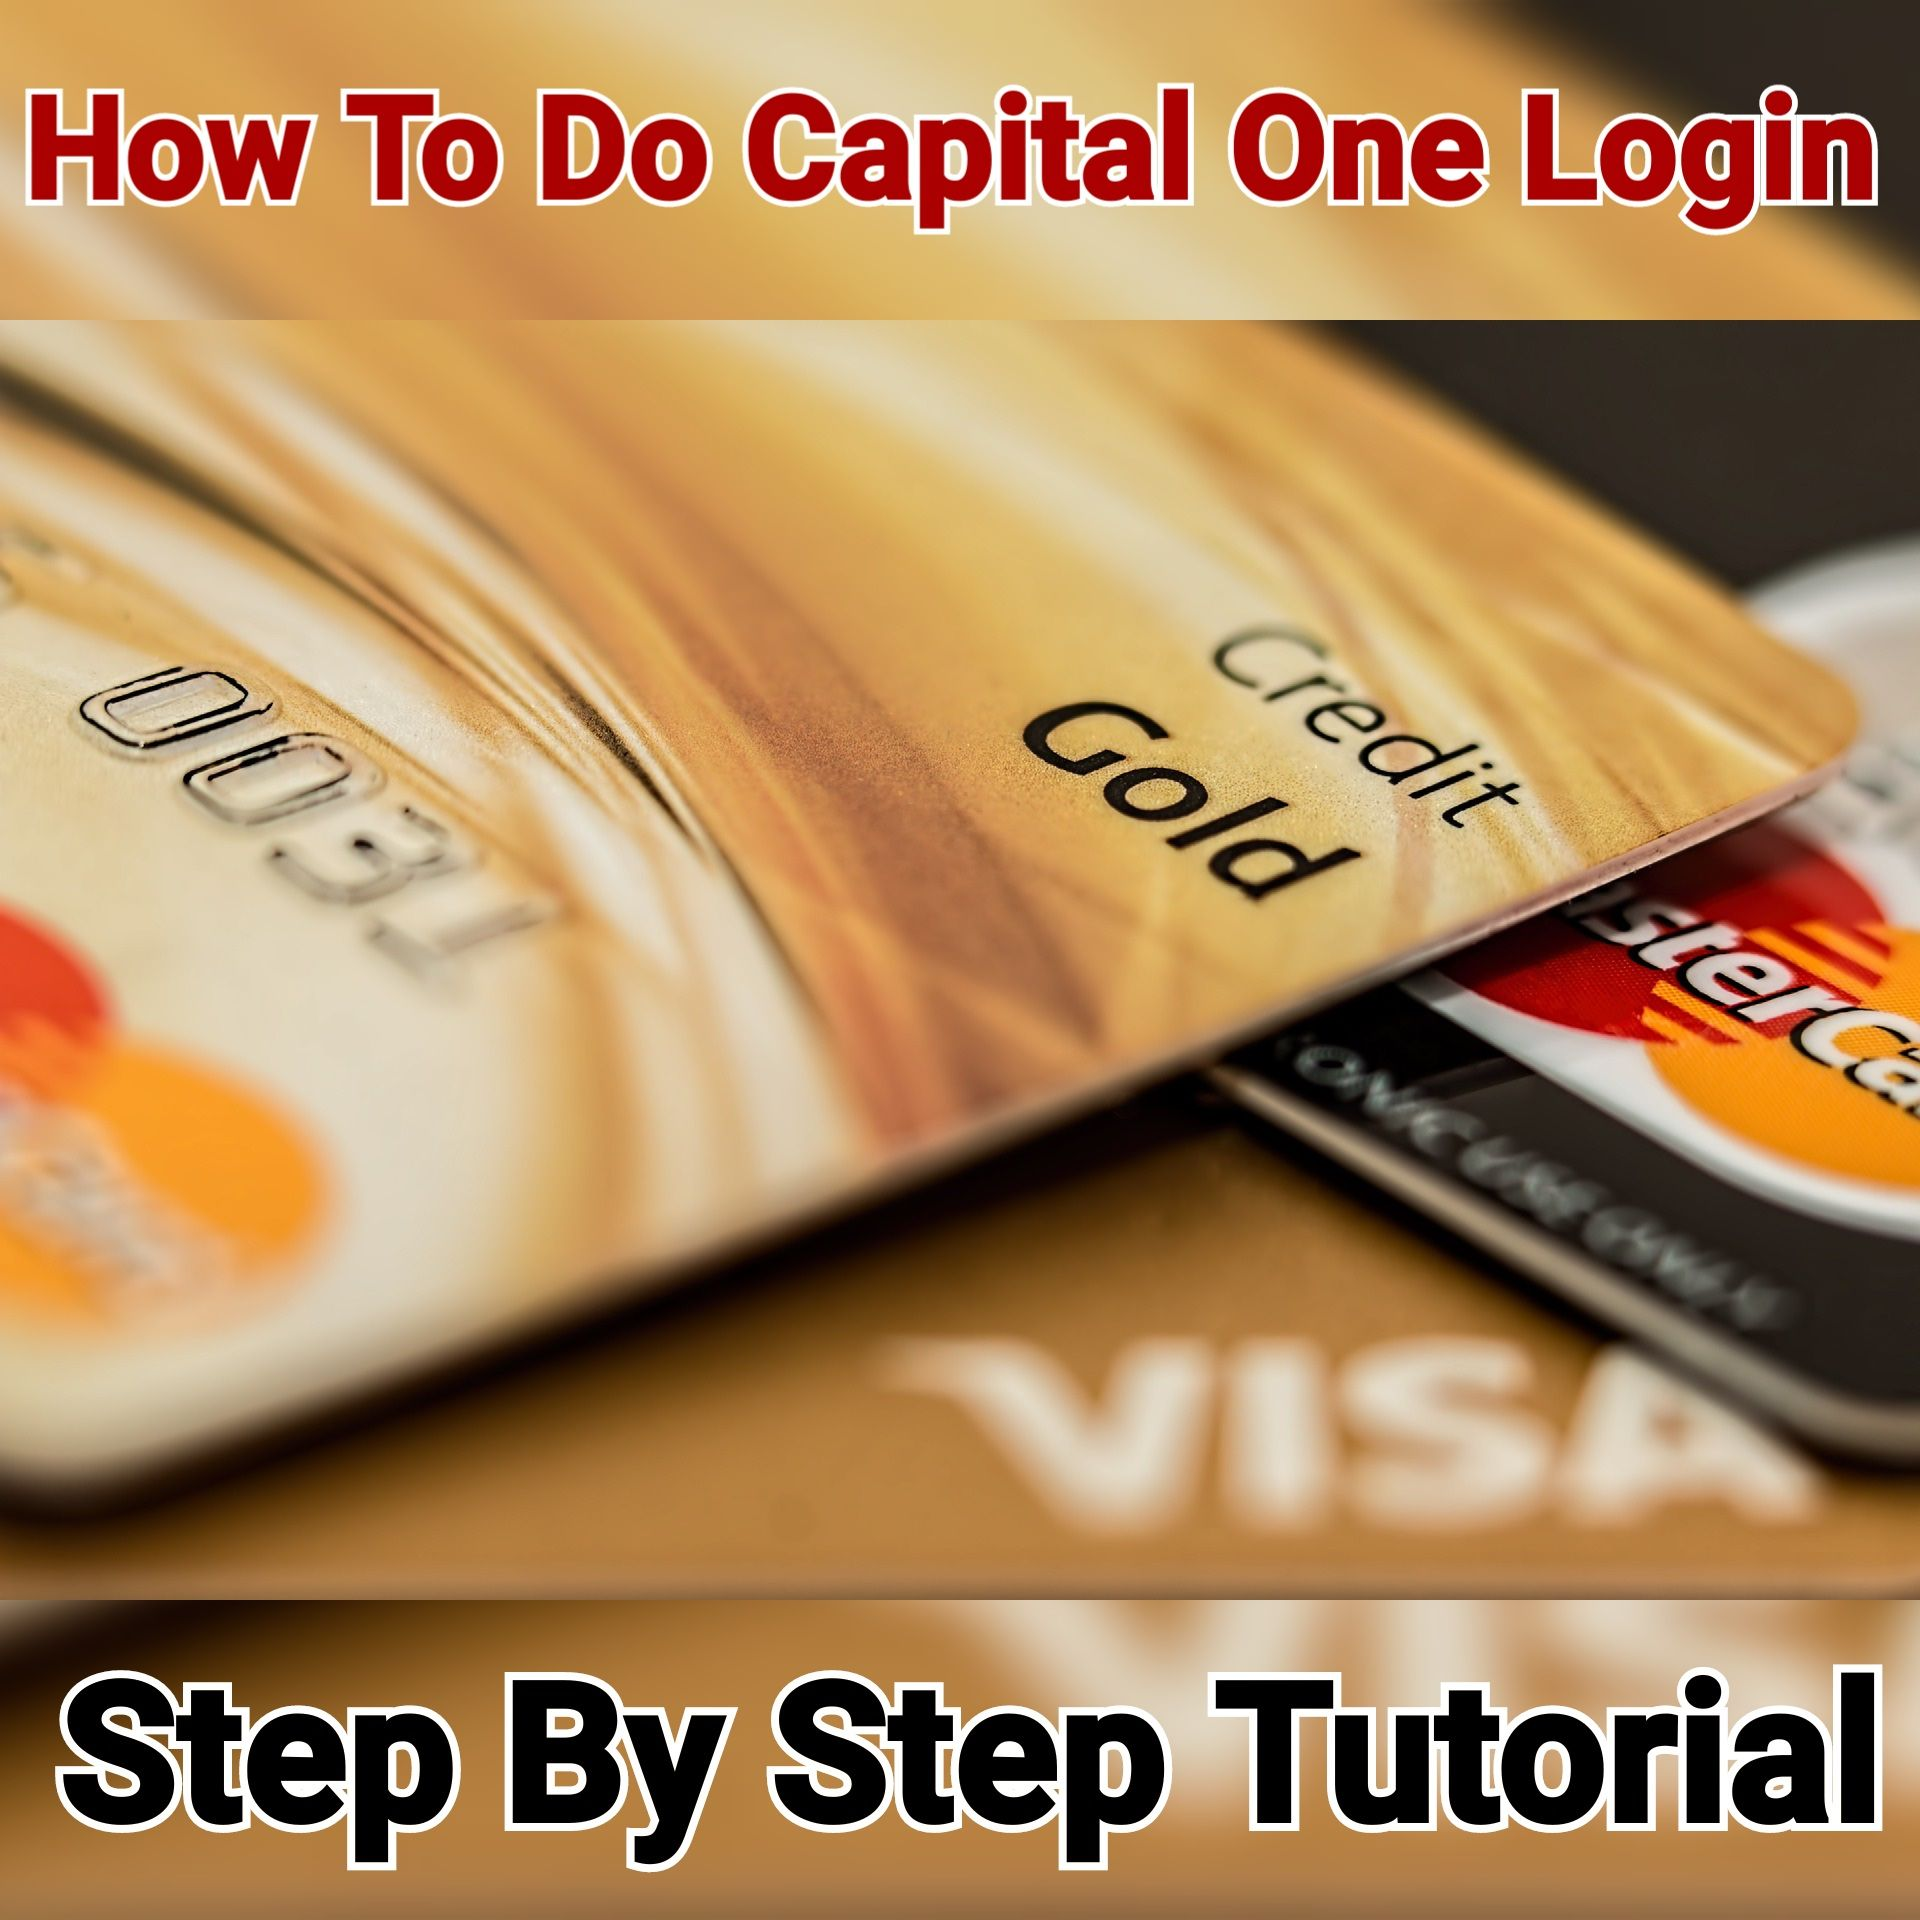 Capital one login investing 101 investments/michigan